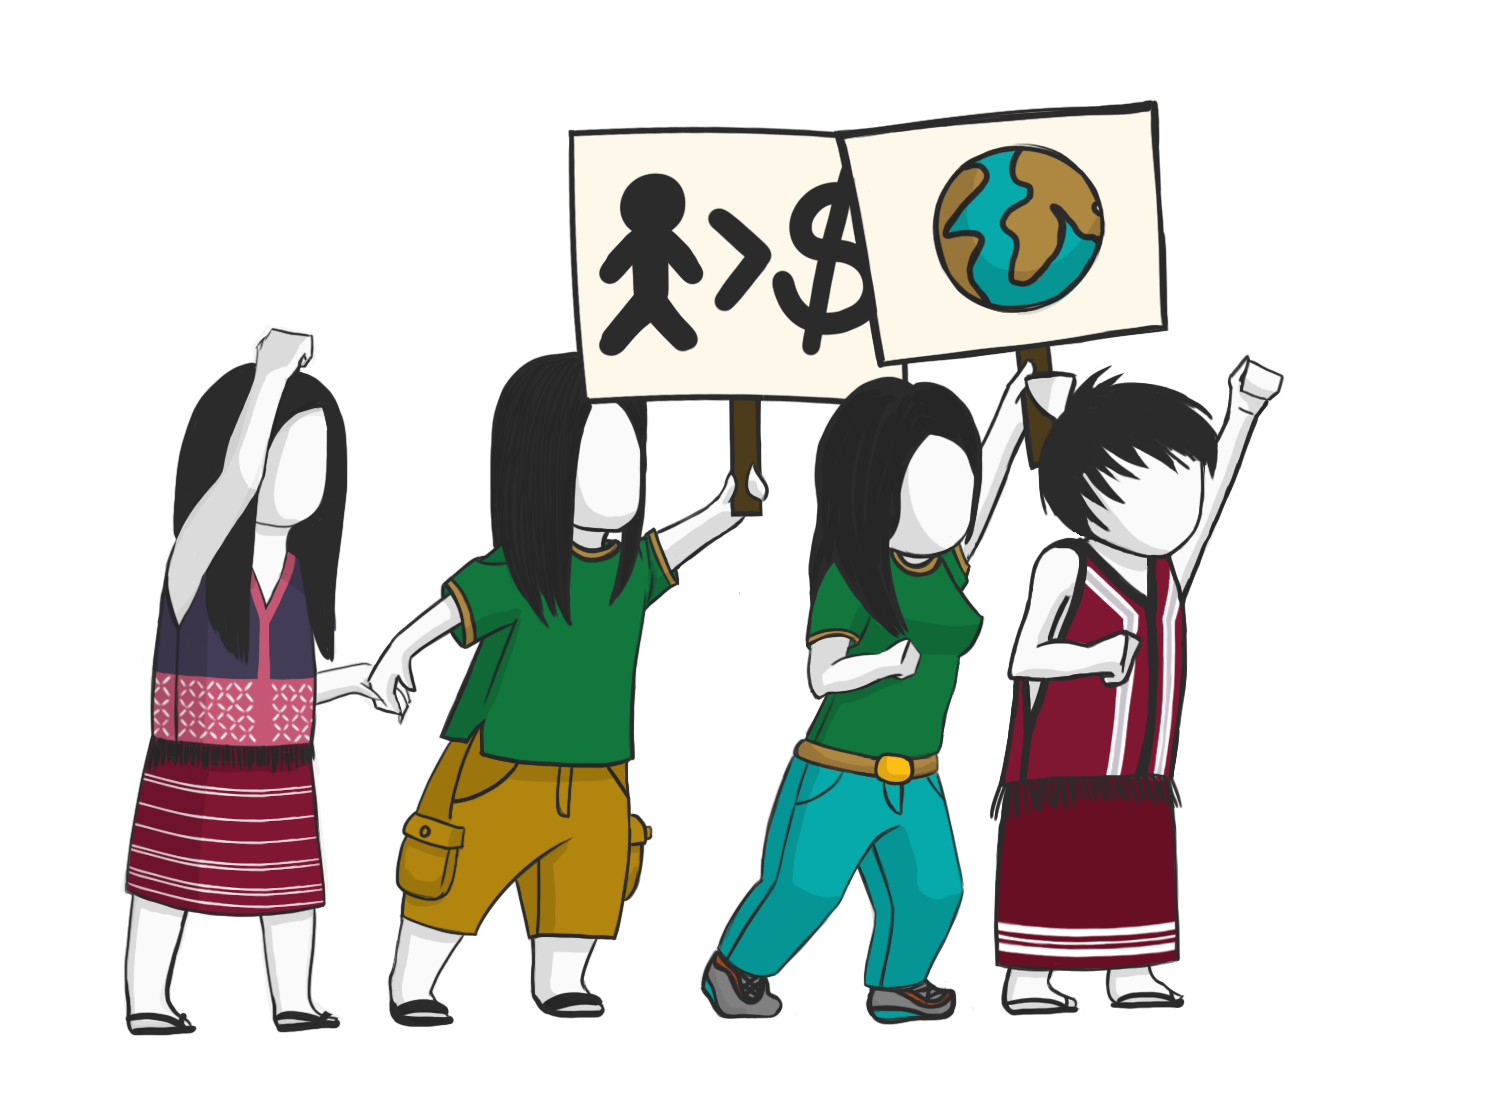 Justice clipart human right. Earthrights international the power